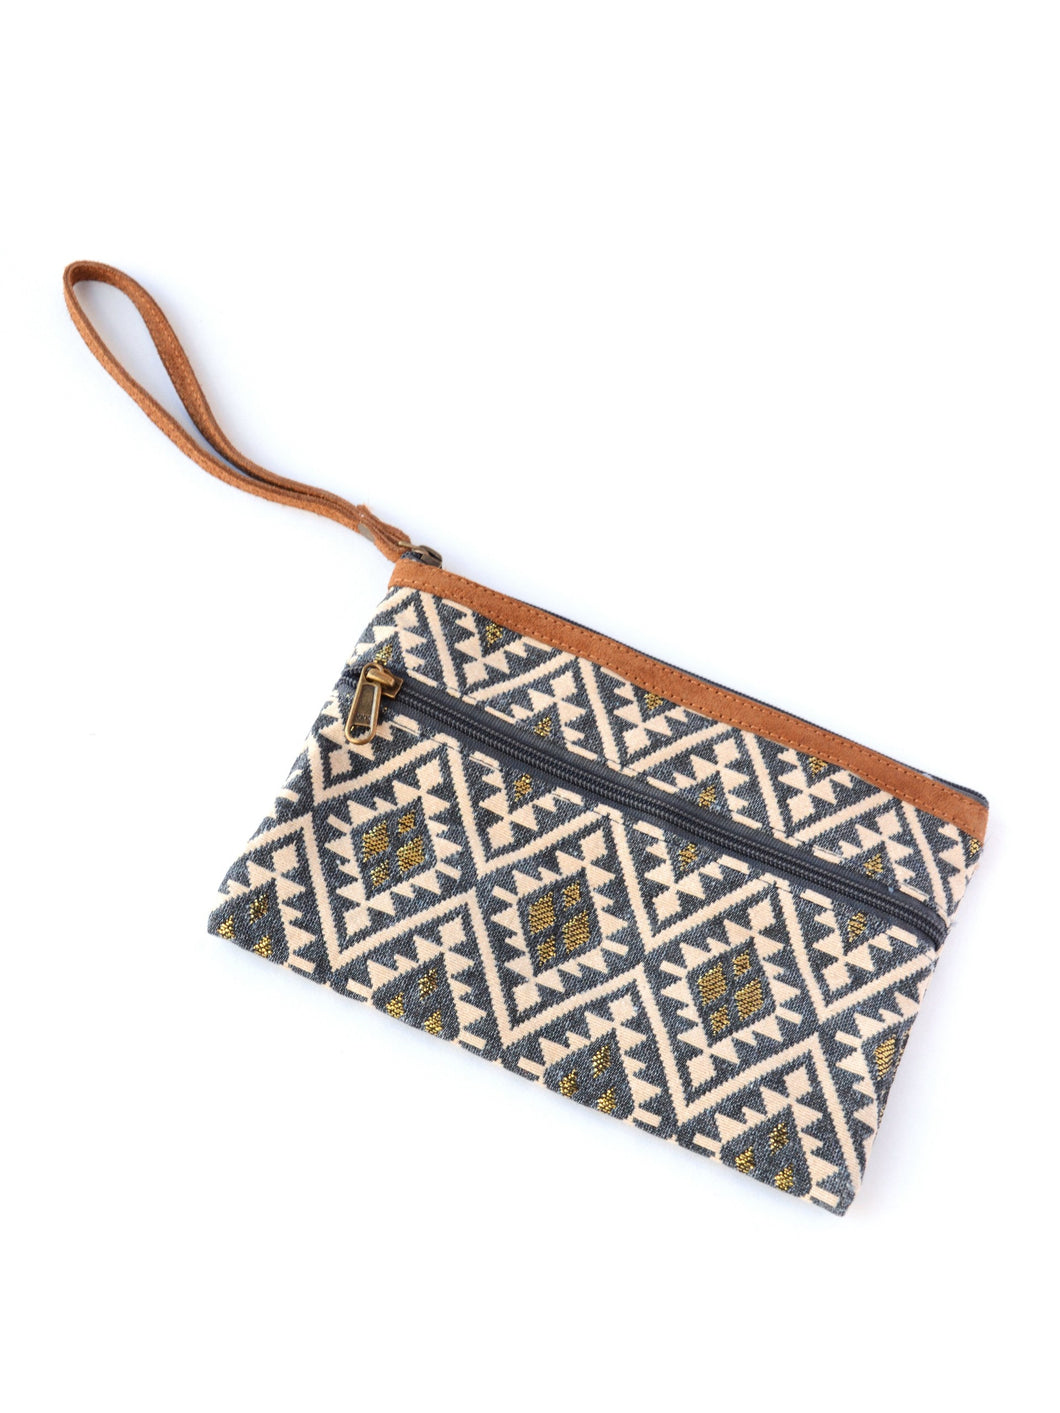 Sonora Clutch